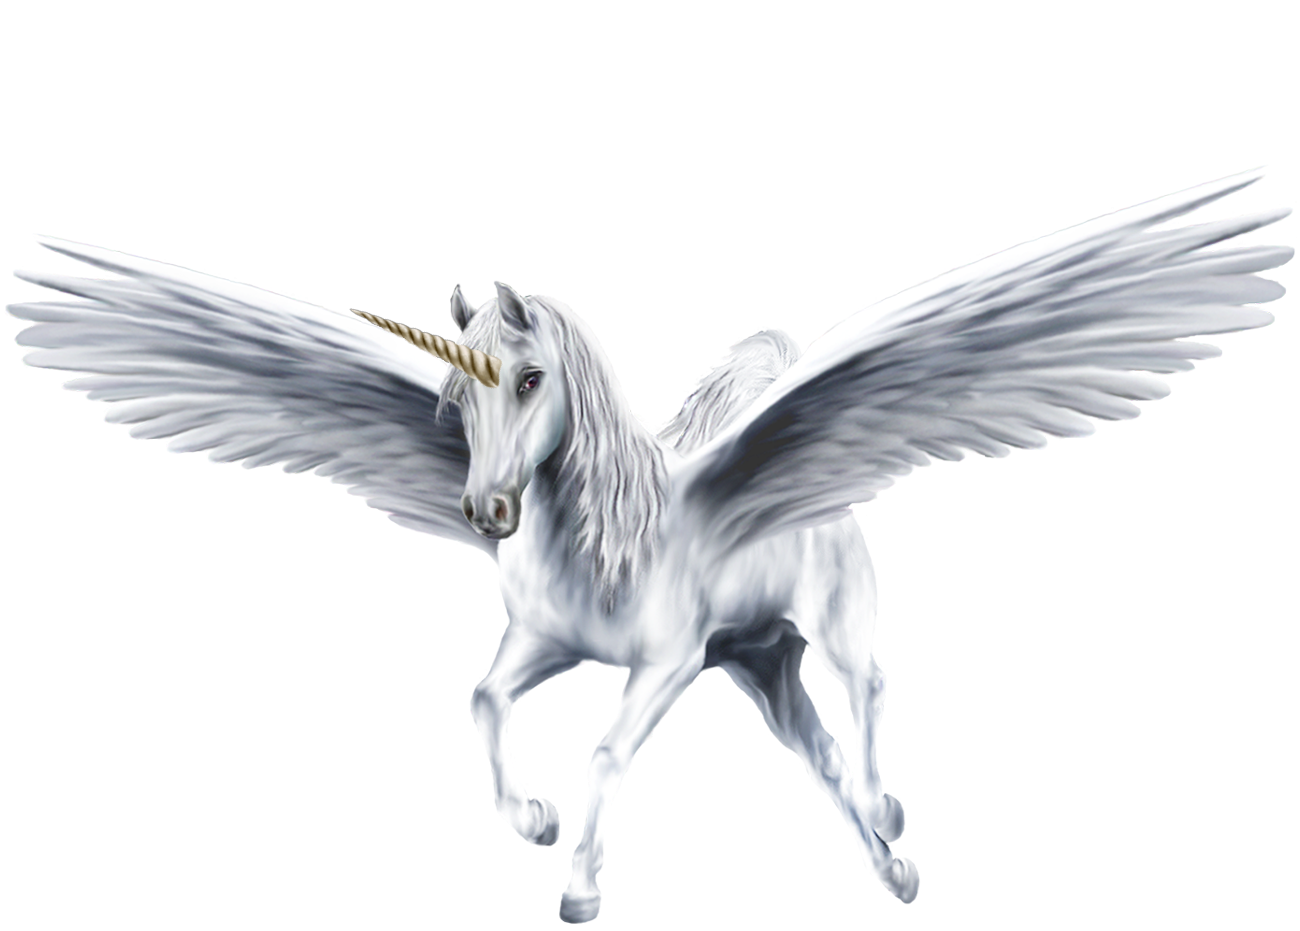 Flying unicorn png. Image an beautiful white